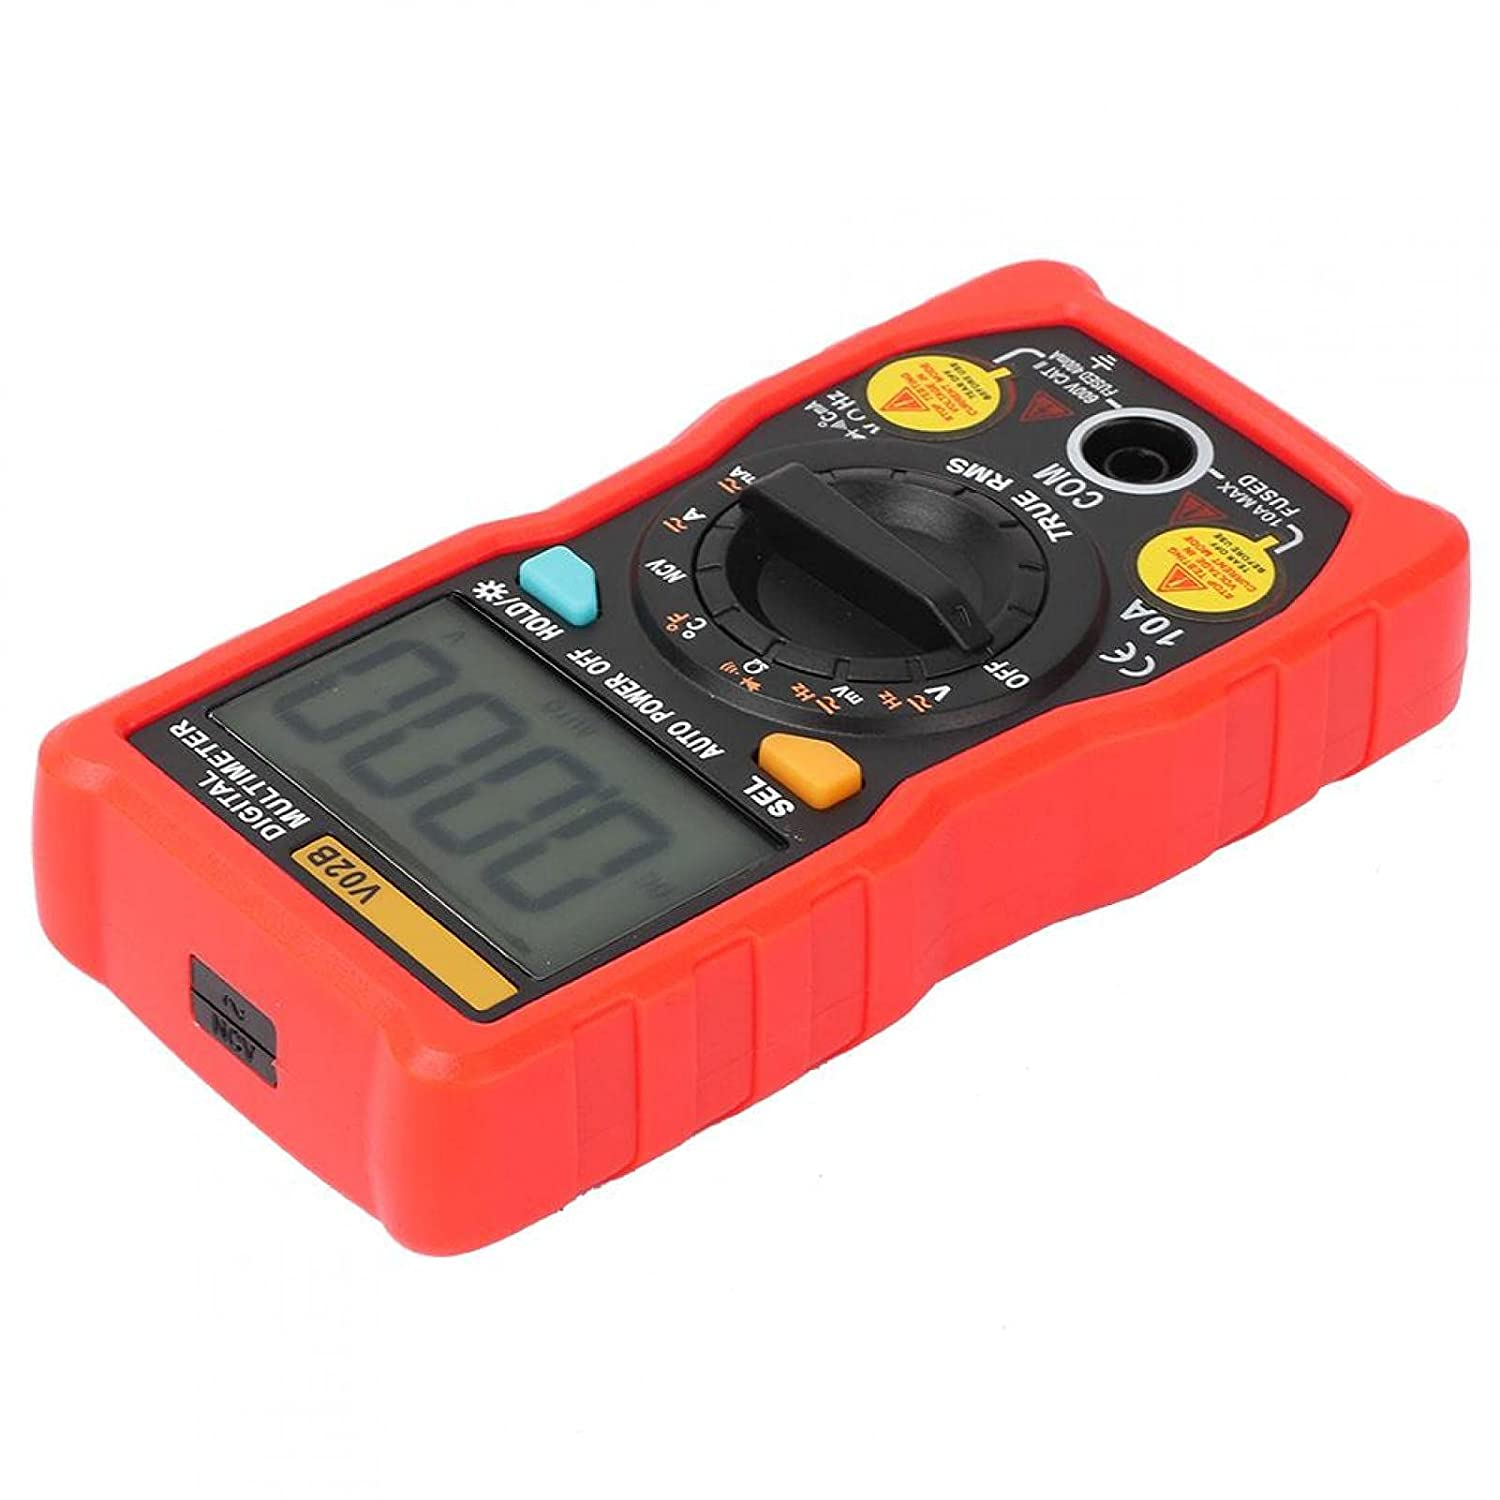 New products, world's highest quality popular! Analog Digital Transistor LCD Range Automatic 5 popular Display Multimeter